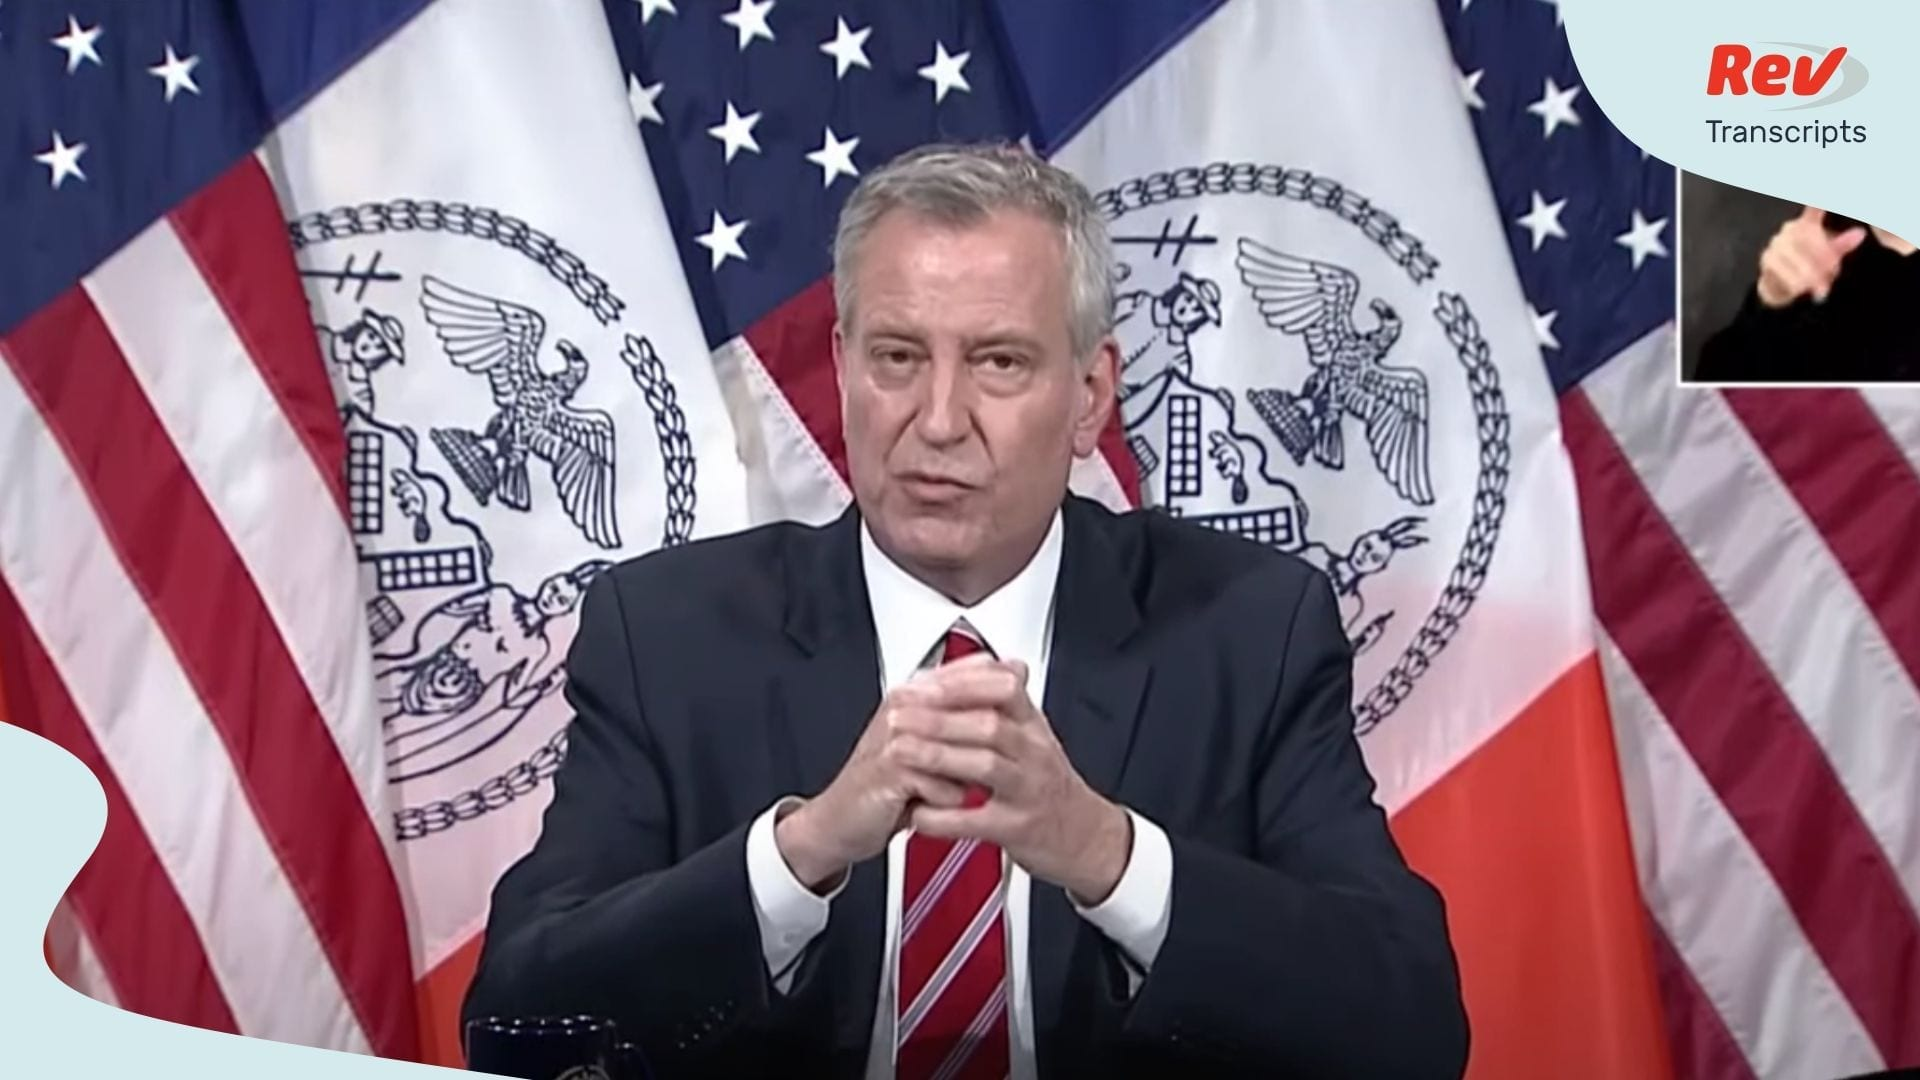 Bill de Blasio Briefing May 4